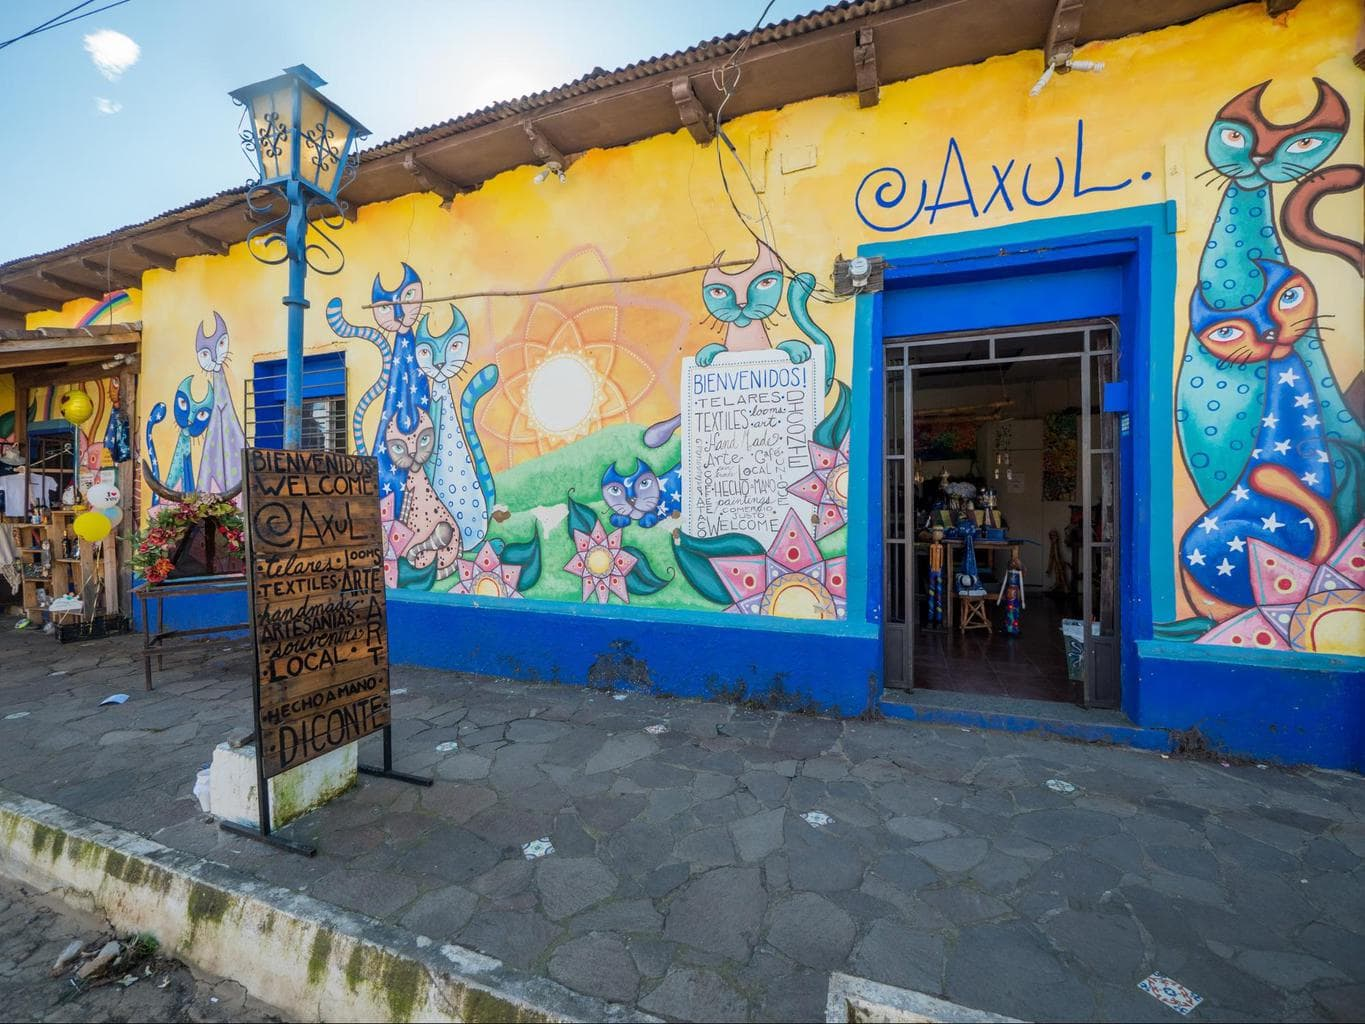 Axul in El Salvador